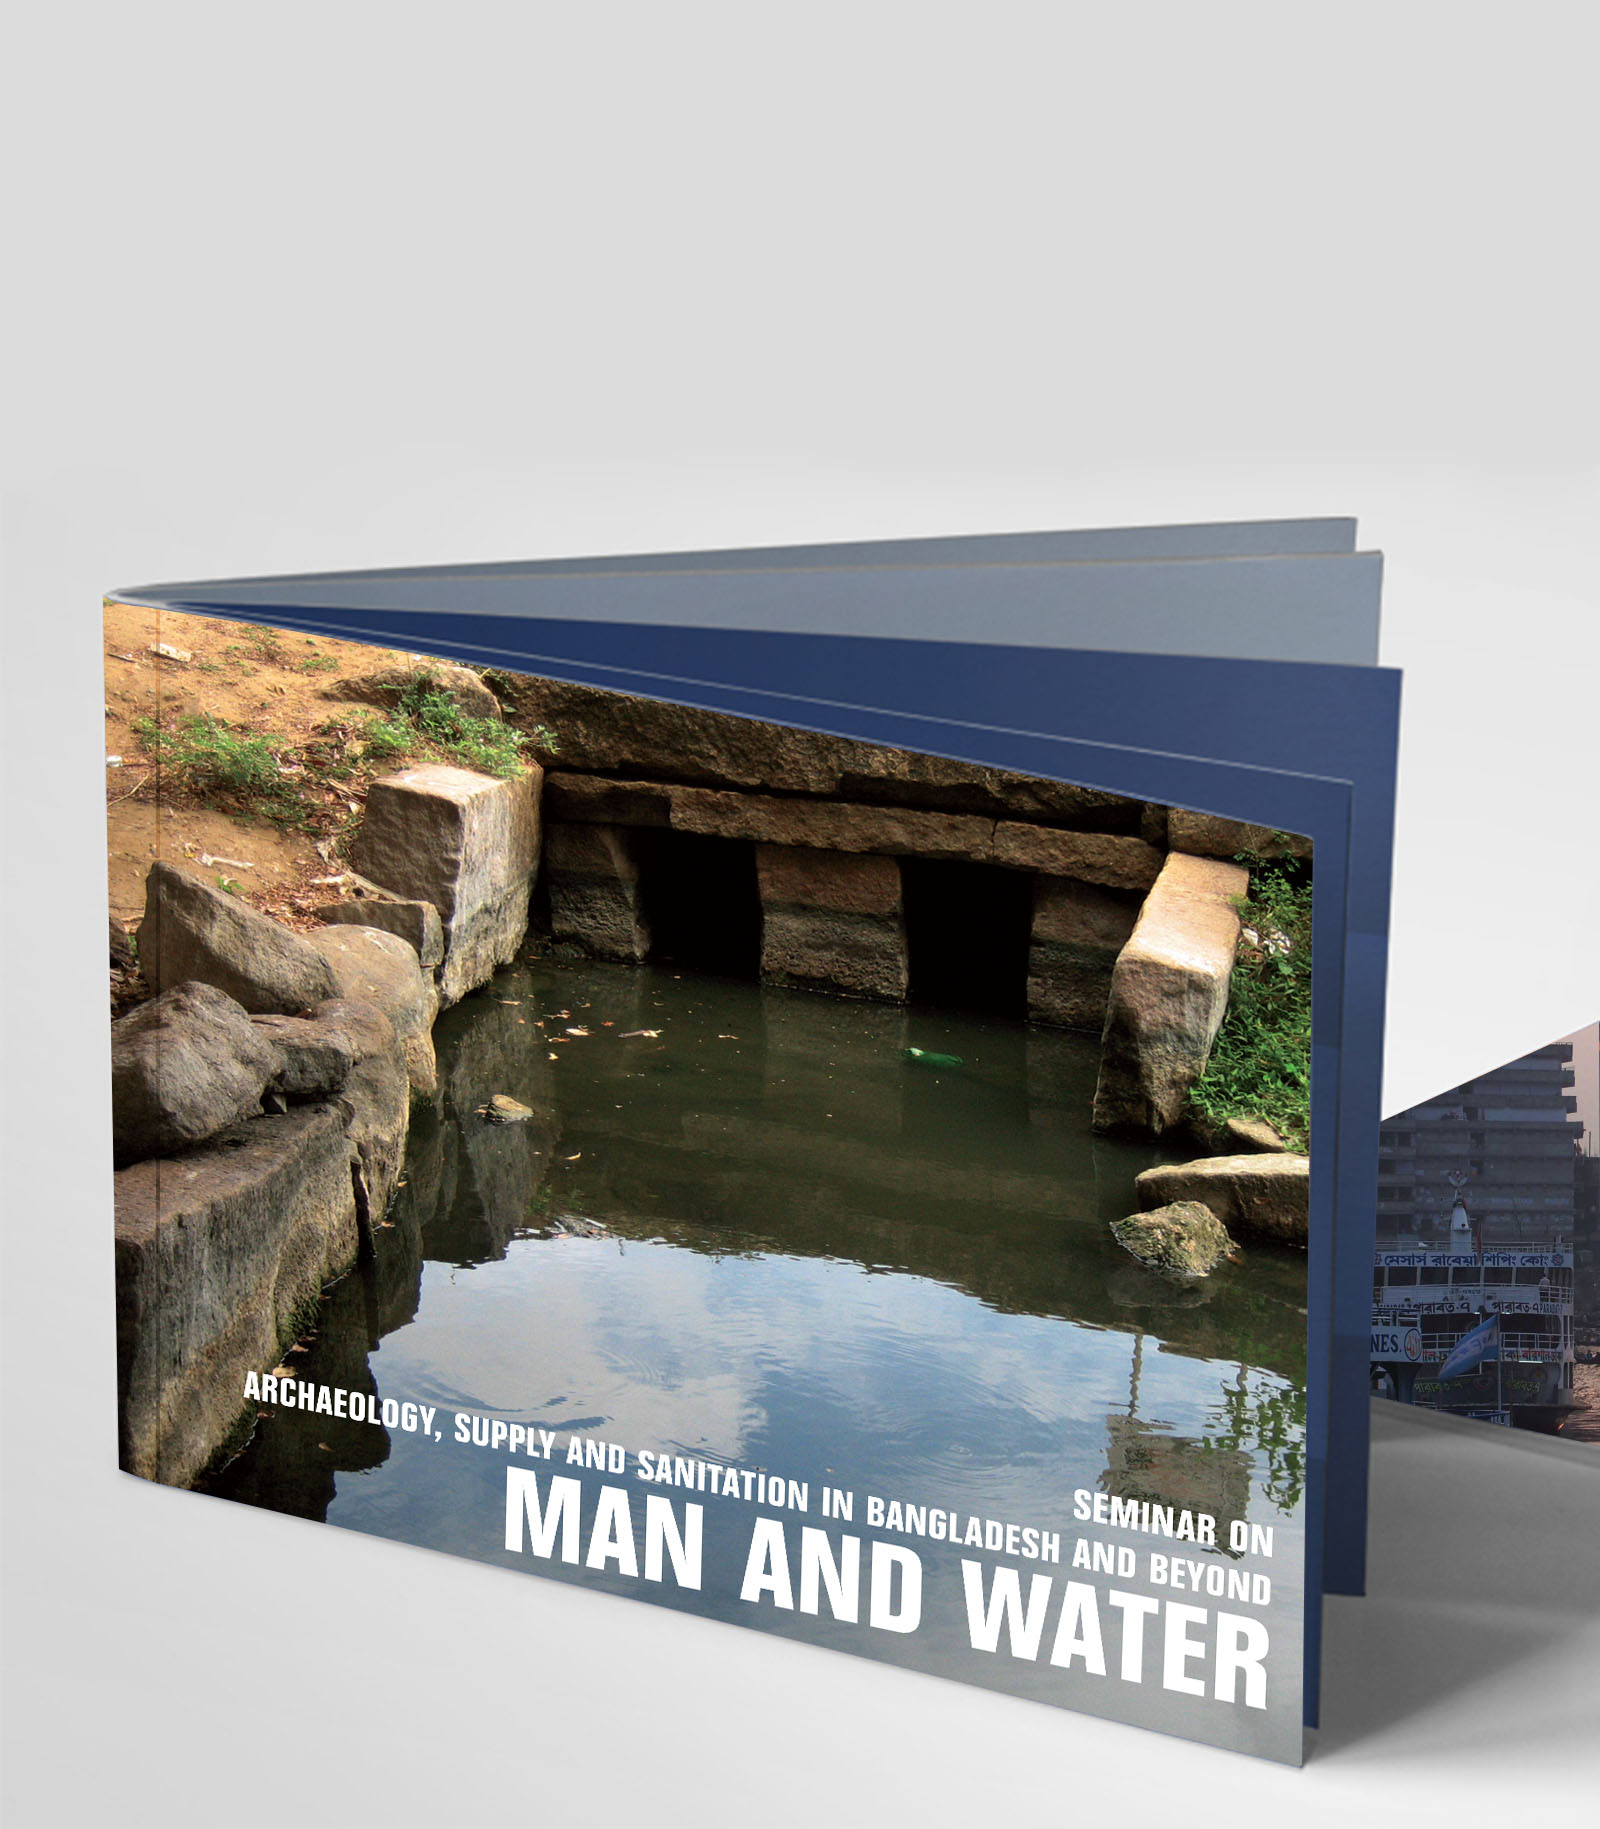 DTC-Seminar-Man-and-Water-Publication-PDF